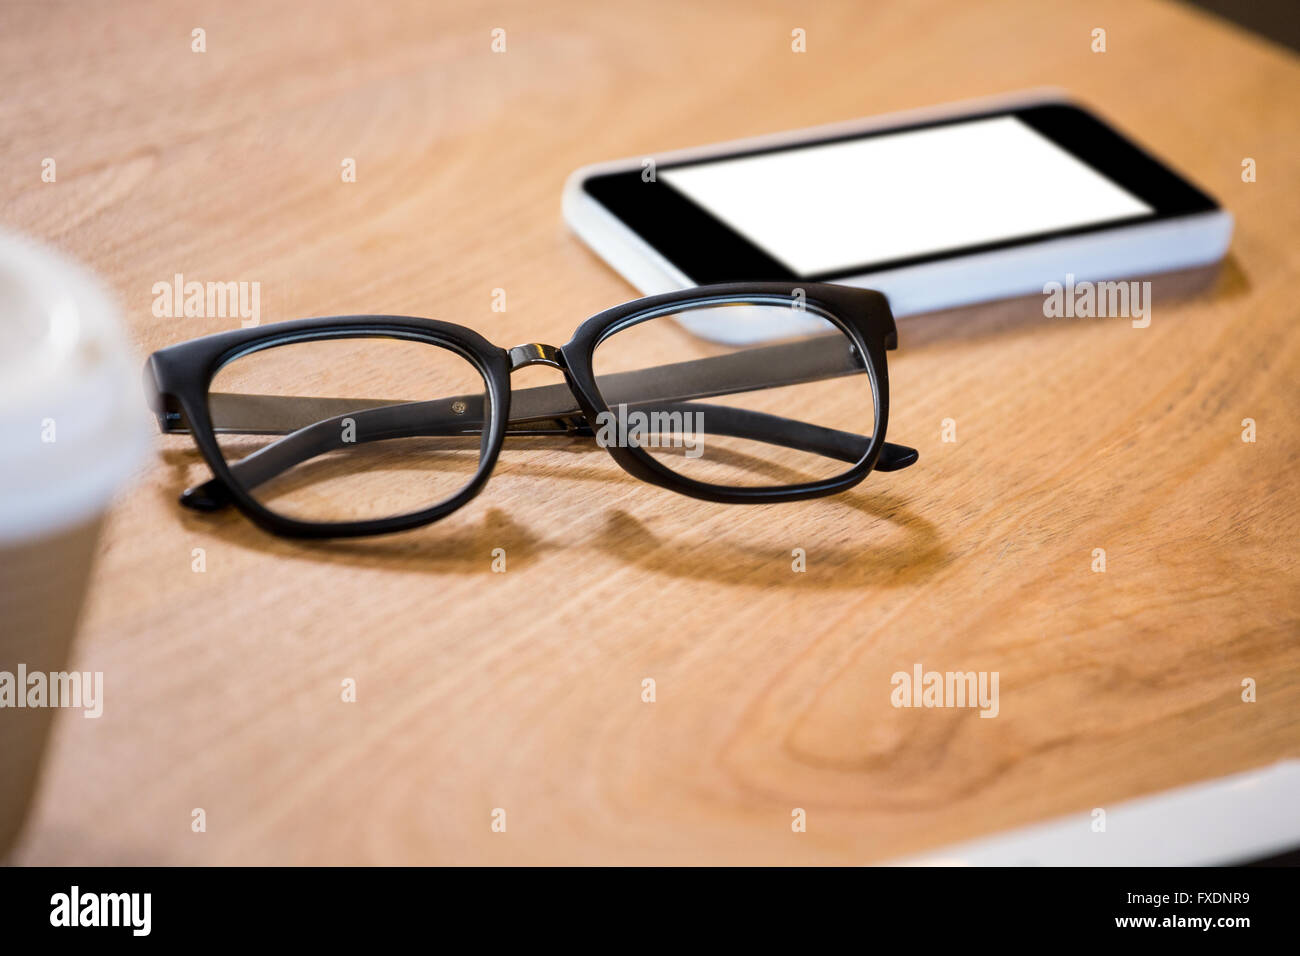 Spectacle and mobile phone on desk - Stock Image